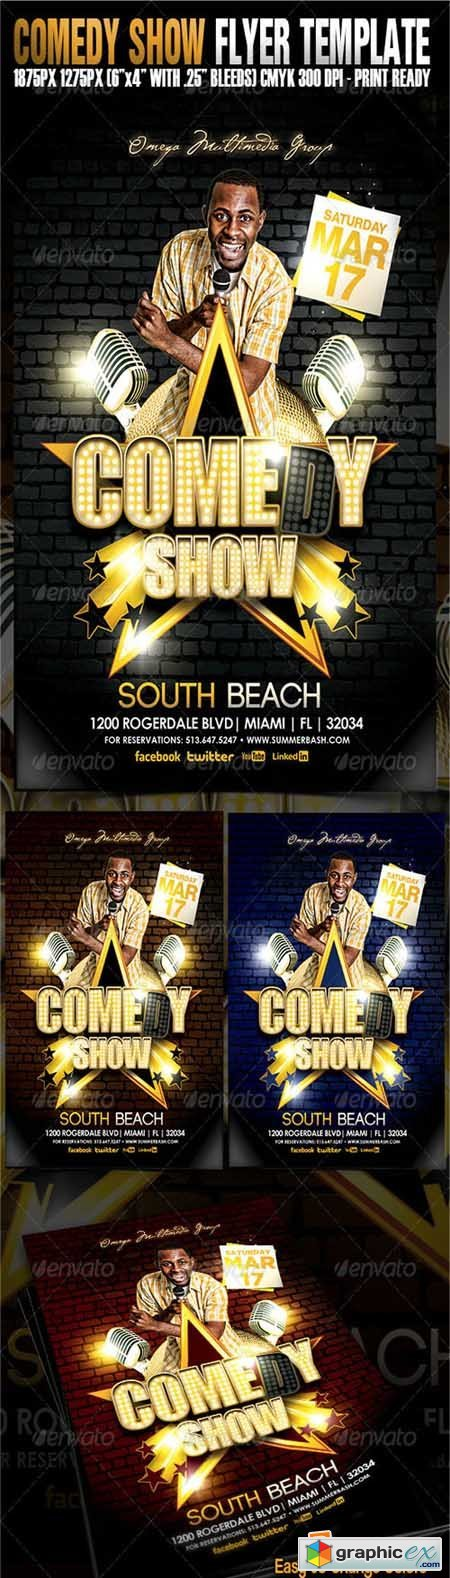 Comedy Show Flyer Template   Free Download Vector Stock